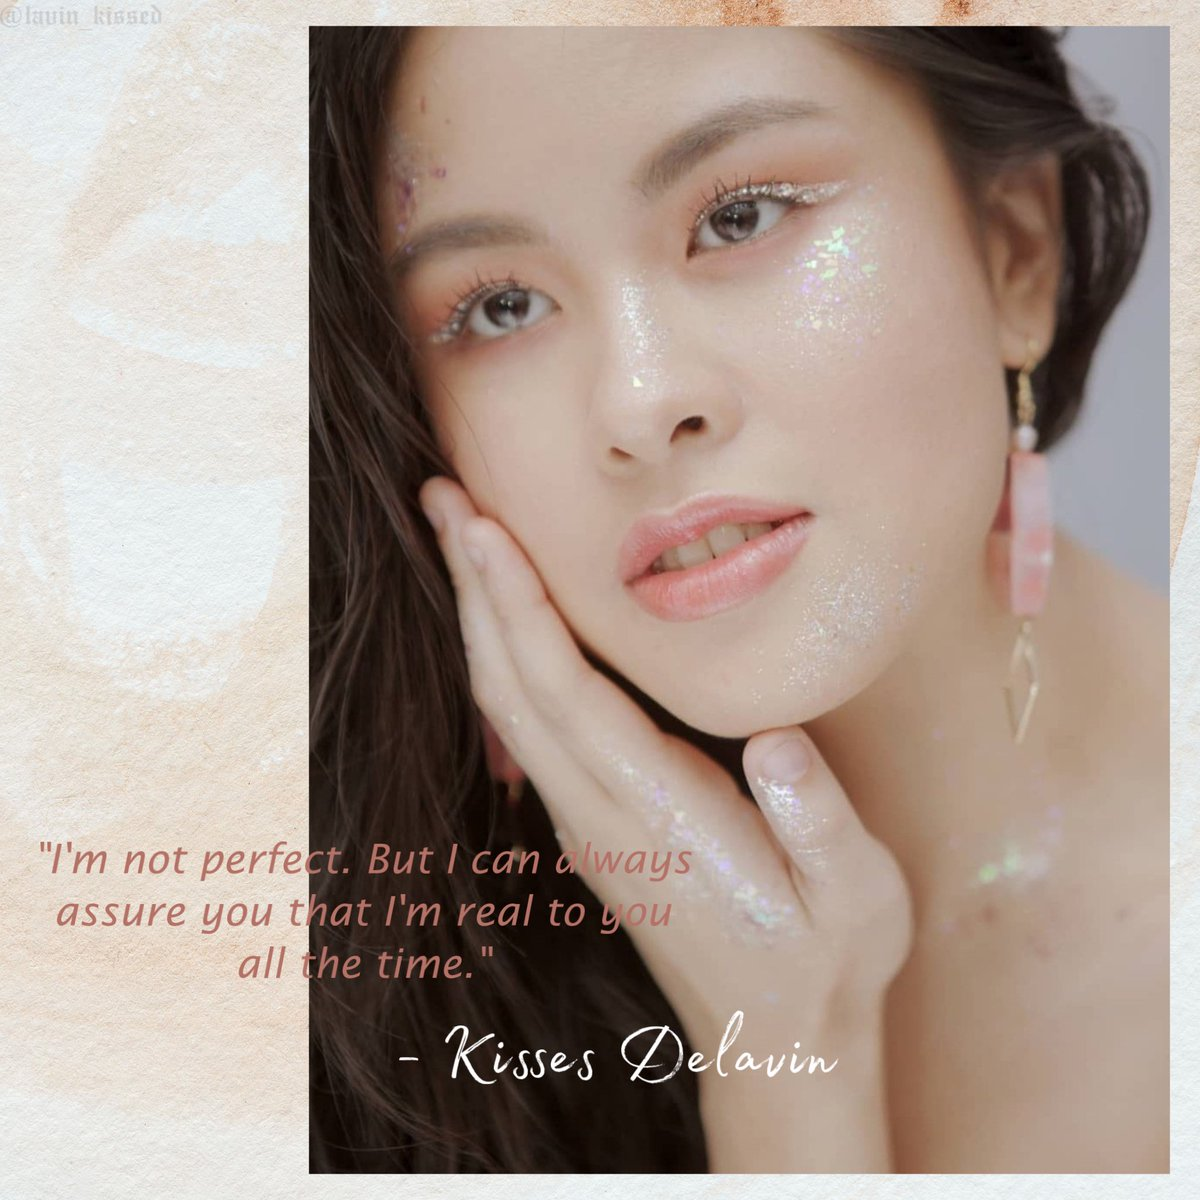 """""""I can always assure you that I'm real to you all the time."""" - @KissesDelavin  TUEStayWith KISSES  #KissesDelavin <br>http://pic.twitter.com/BAPc38g1bB"""